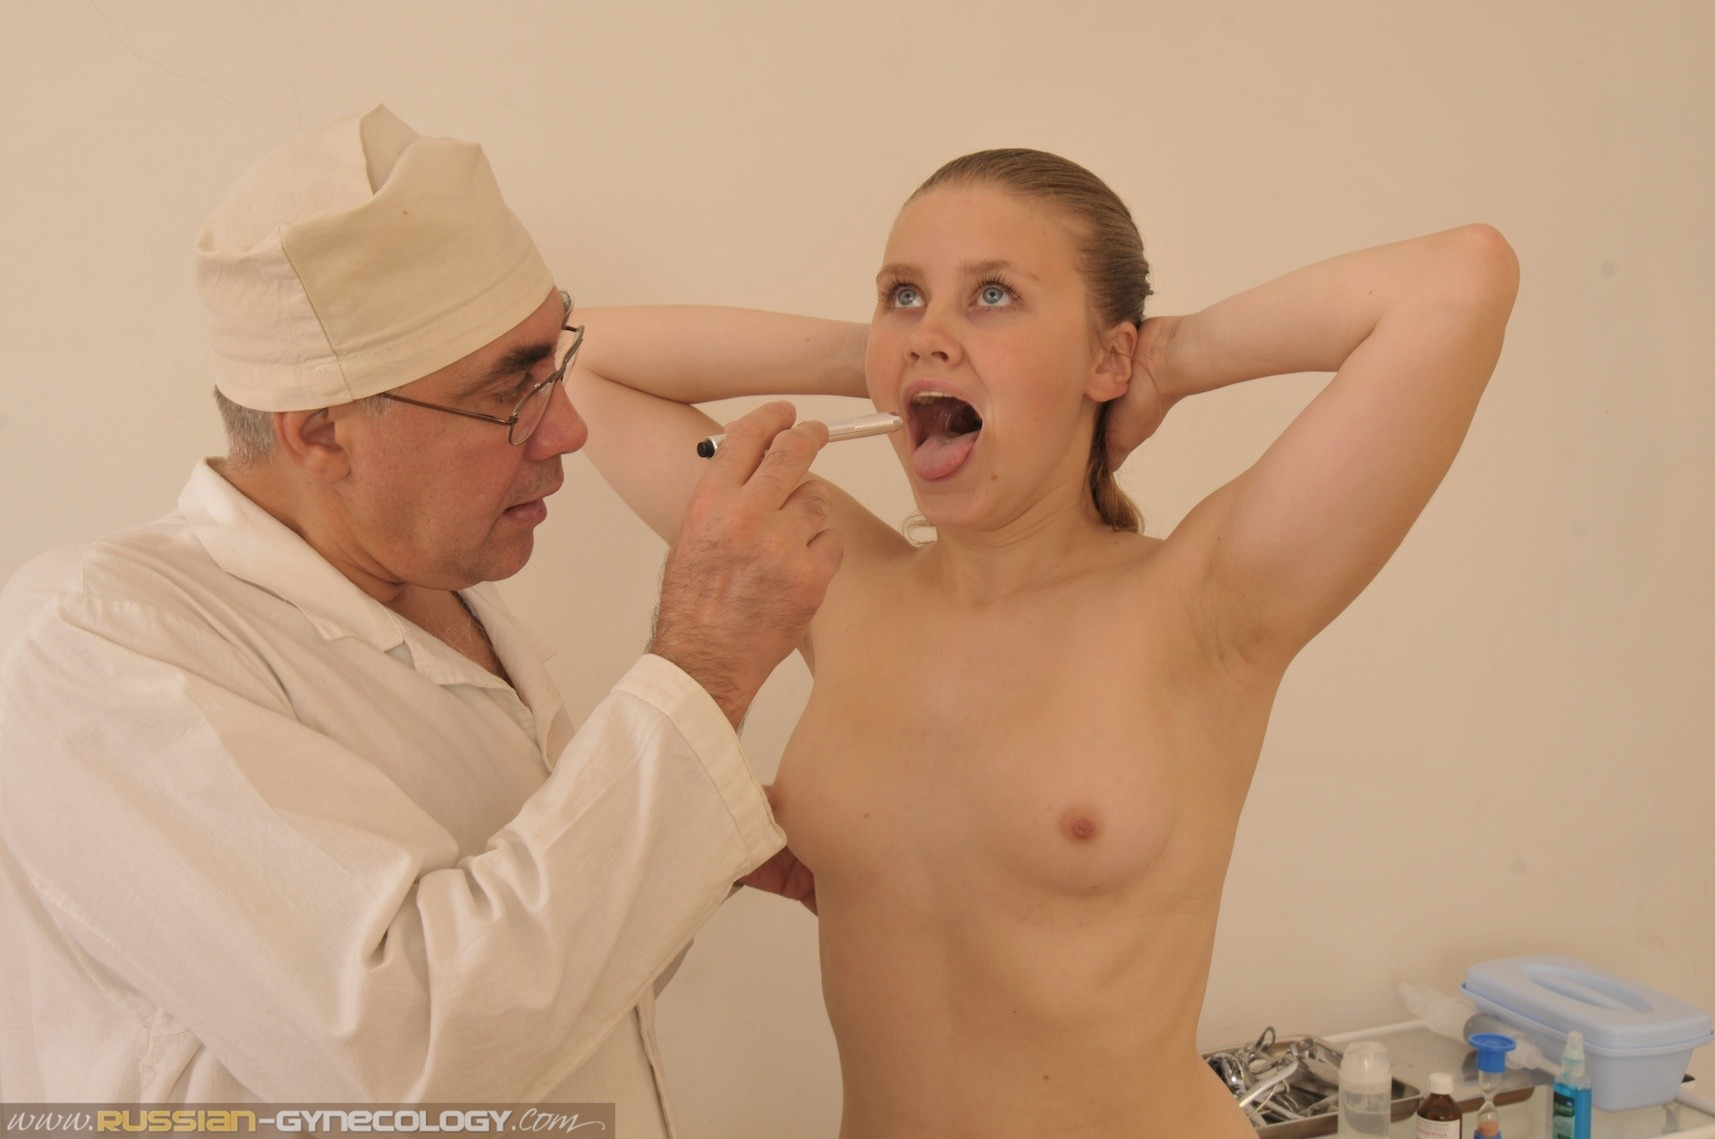 russian gynecology site hg galleries 003 photo03